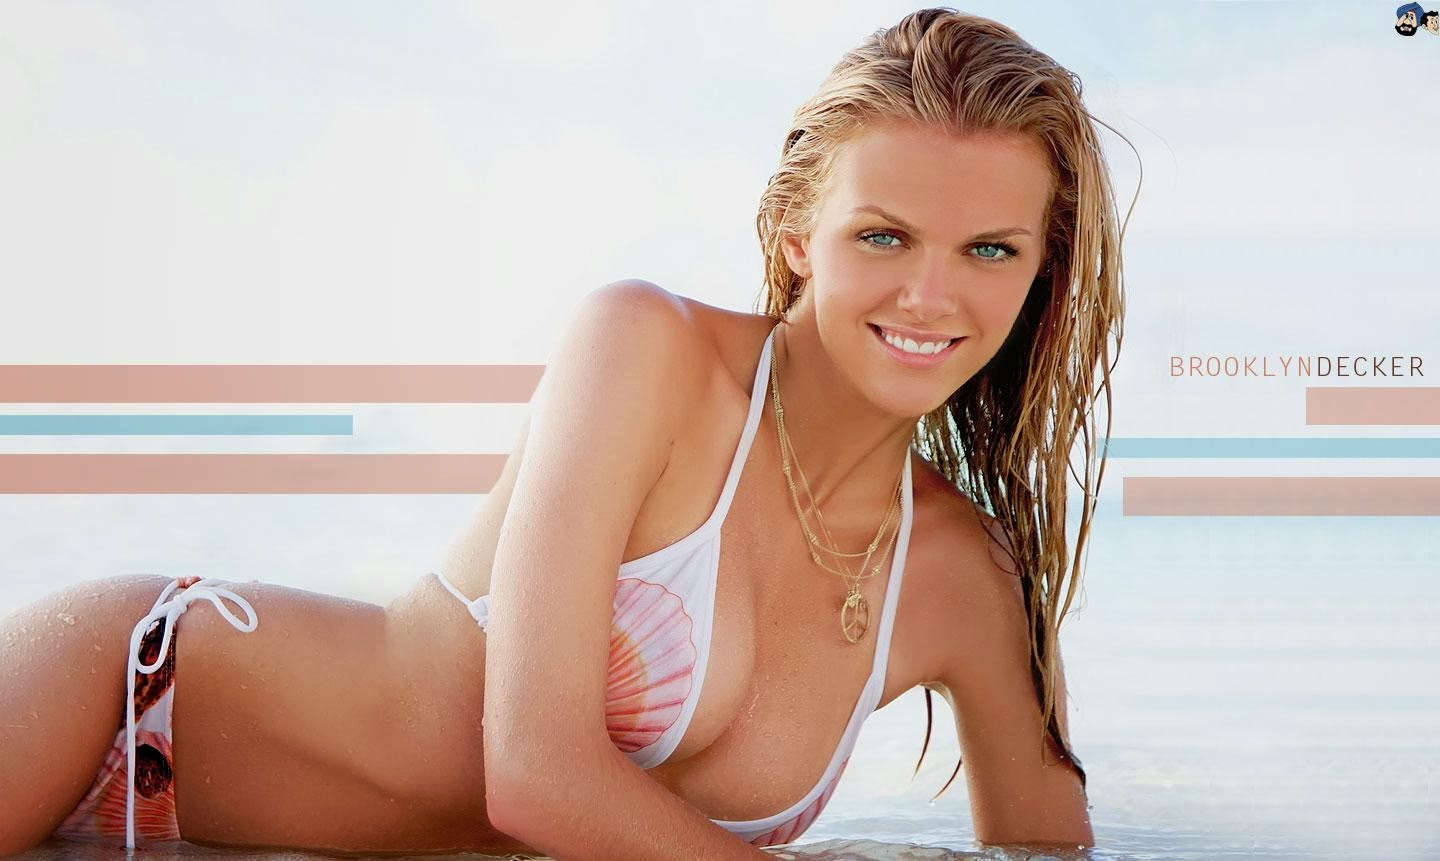 Brooklyn Decker Hd Wallpapers Free Download